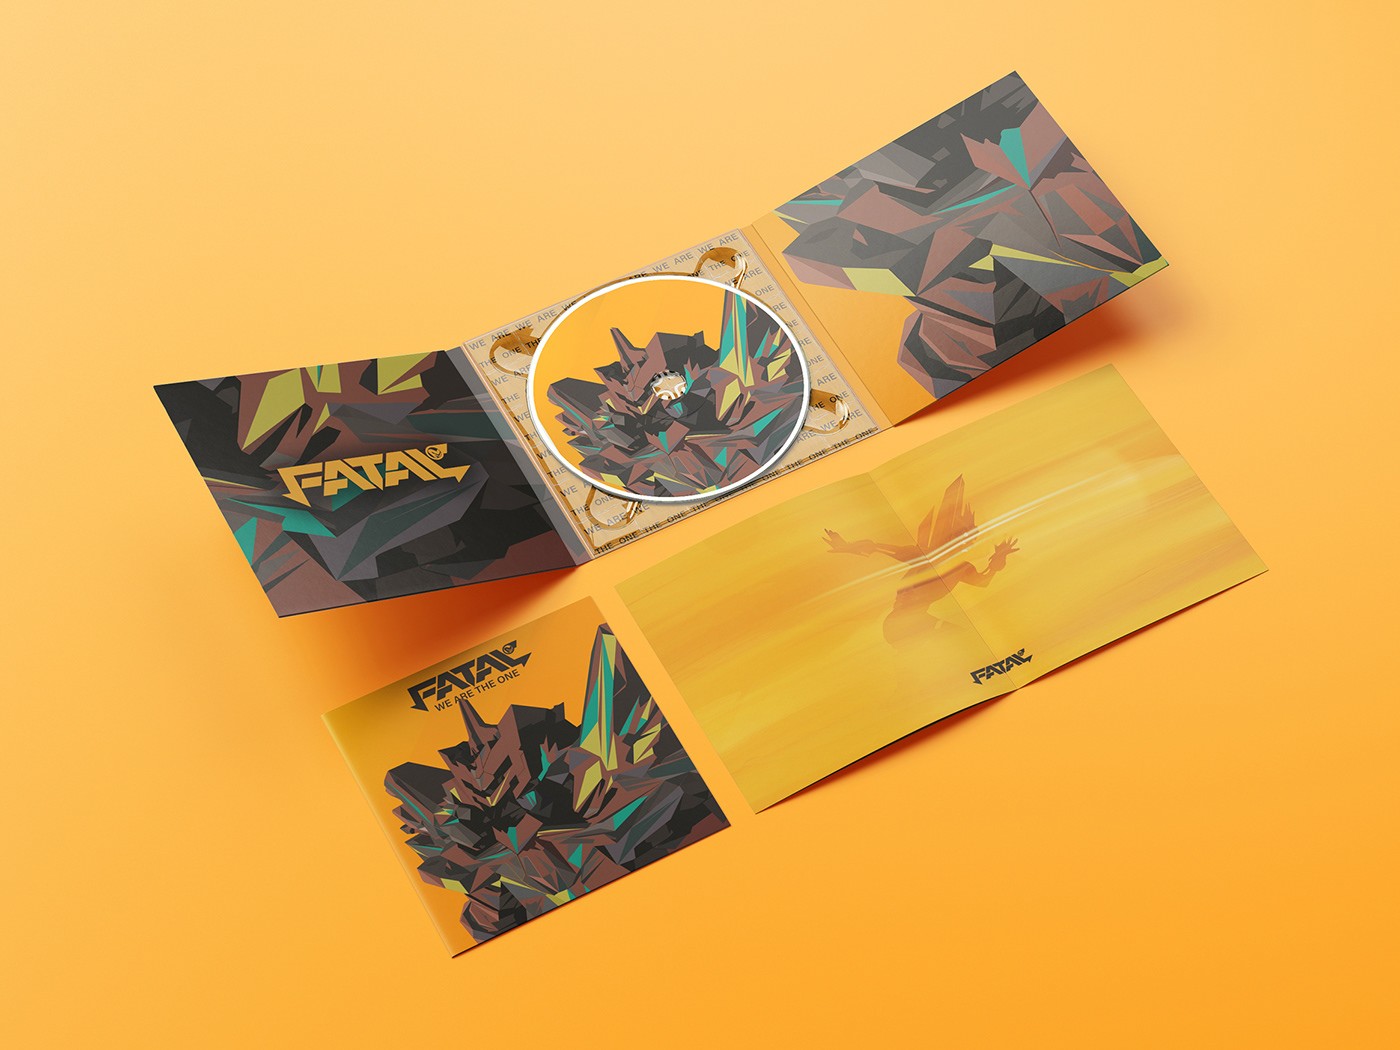 album cover anti artwork cd Cover Art Image making Music Packaging non-format Packaging record